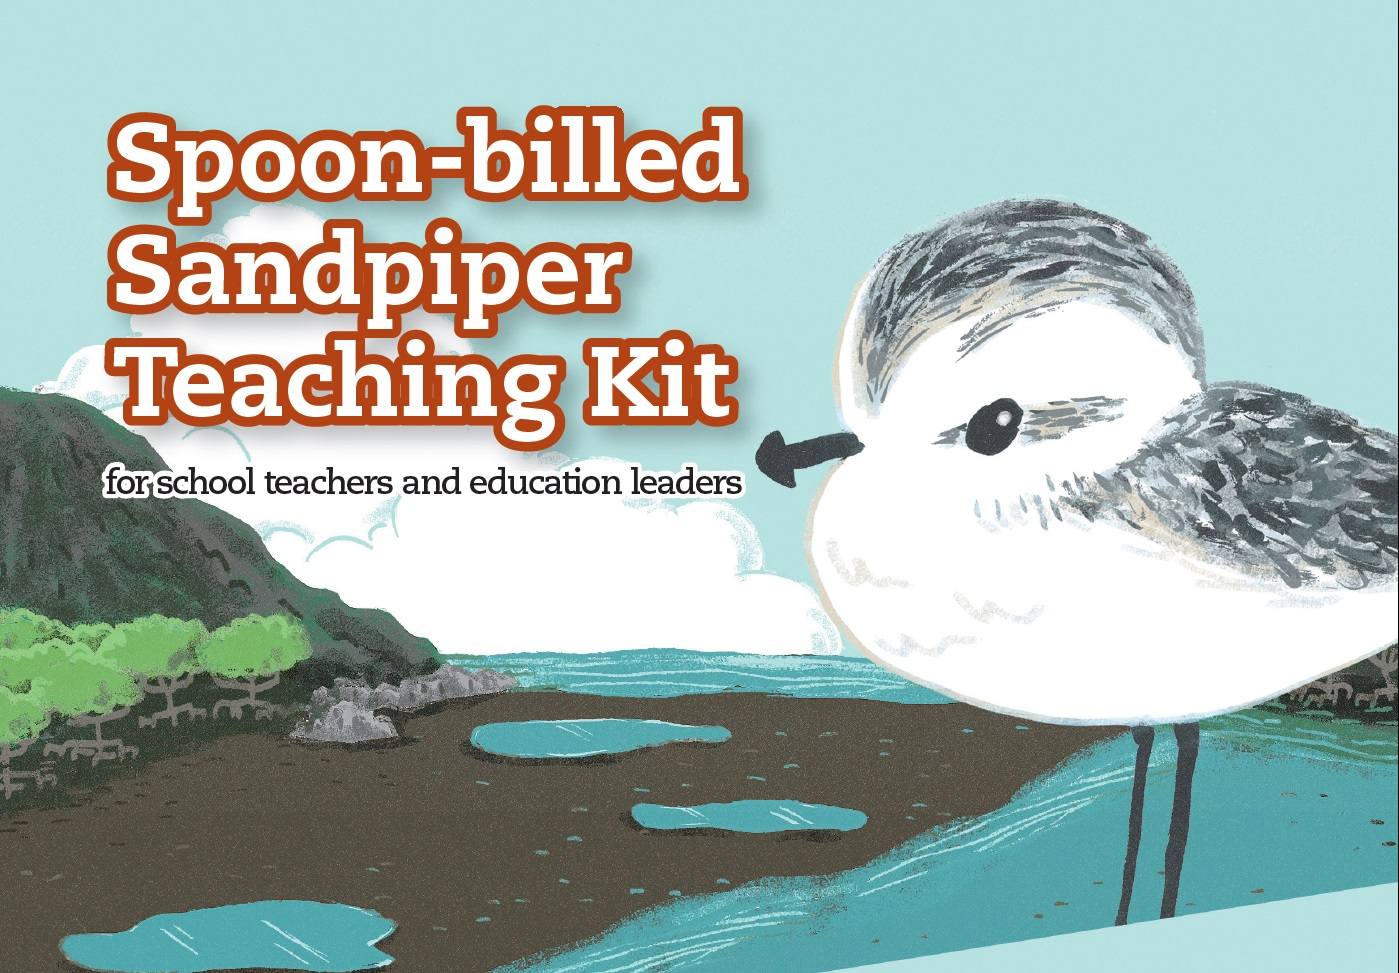 認識勺嘴鷸教材套 Spoon-billed Sandpiper Teaching Kit